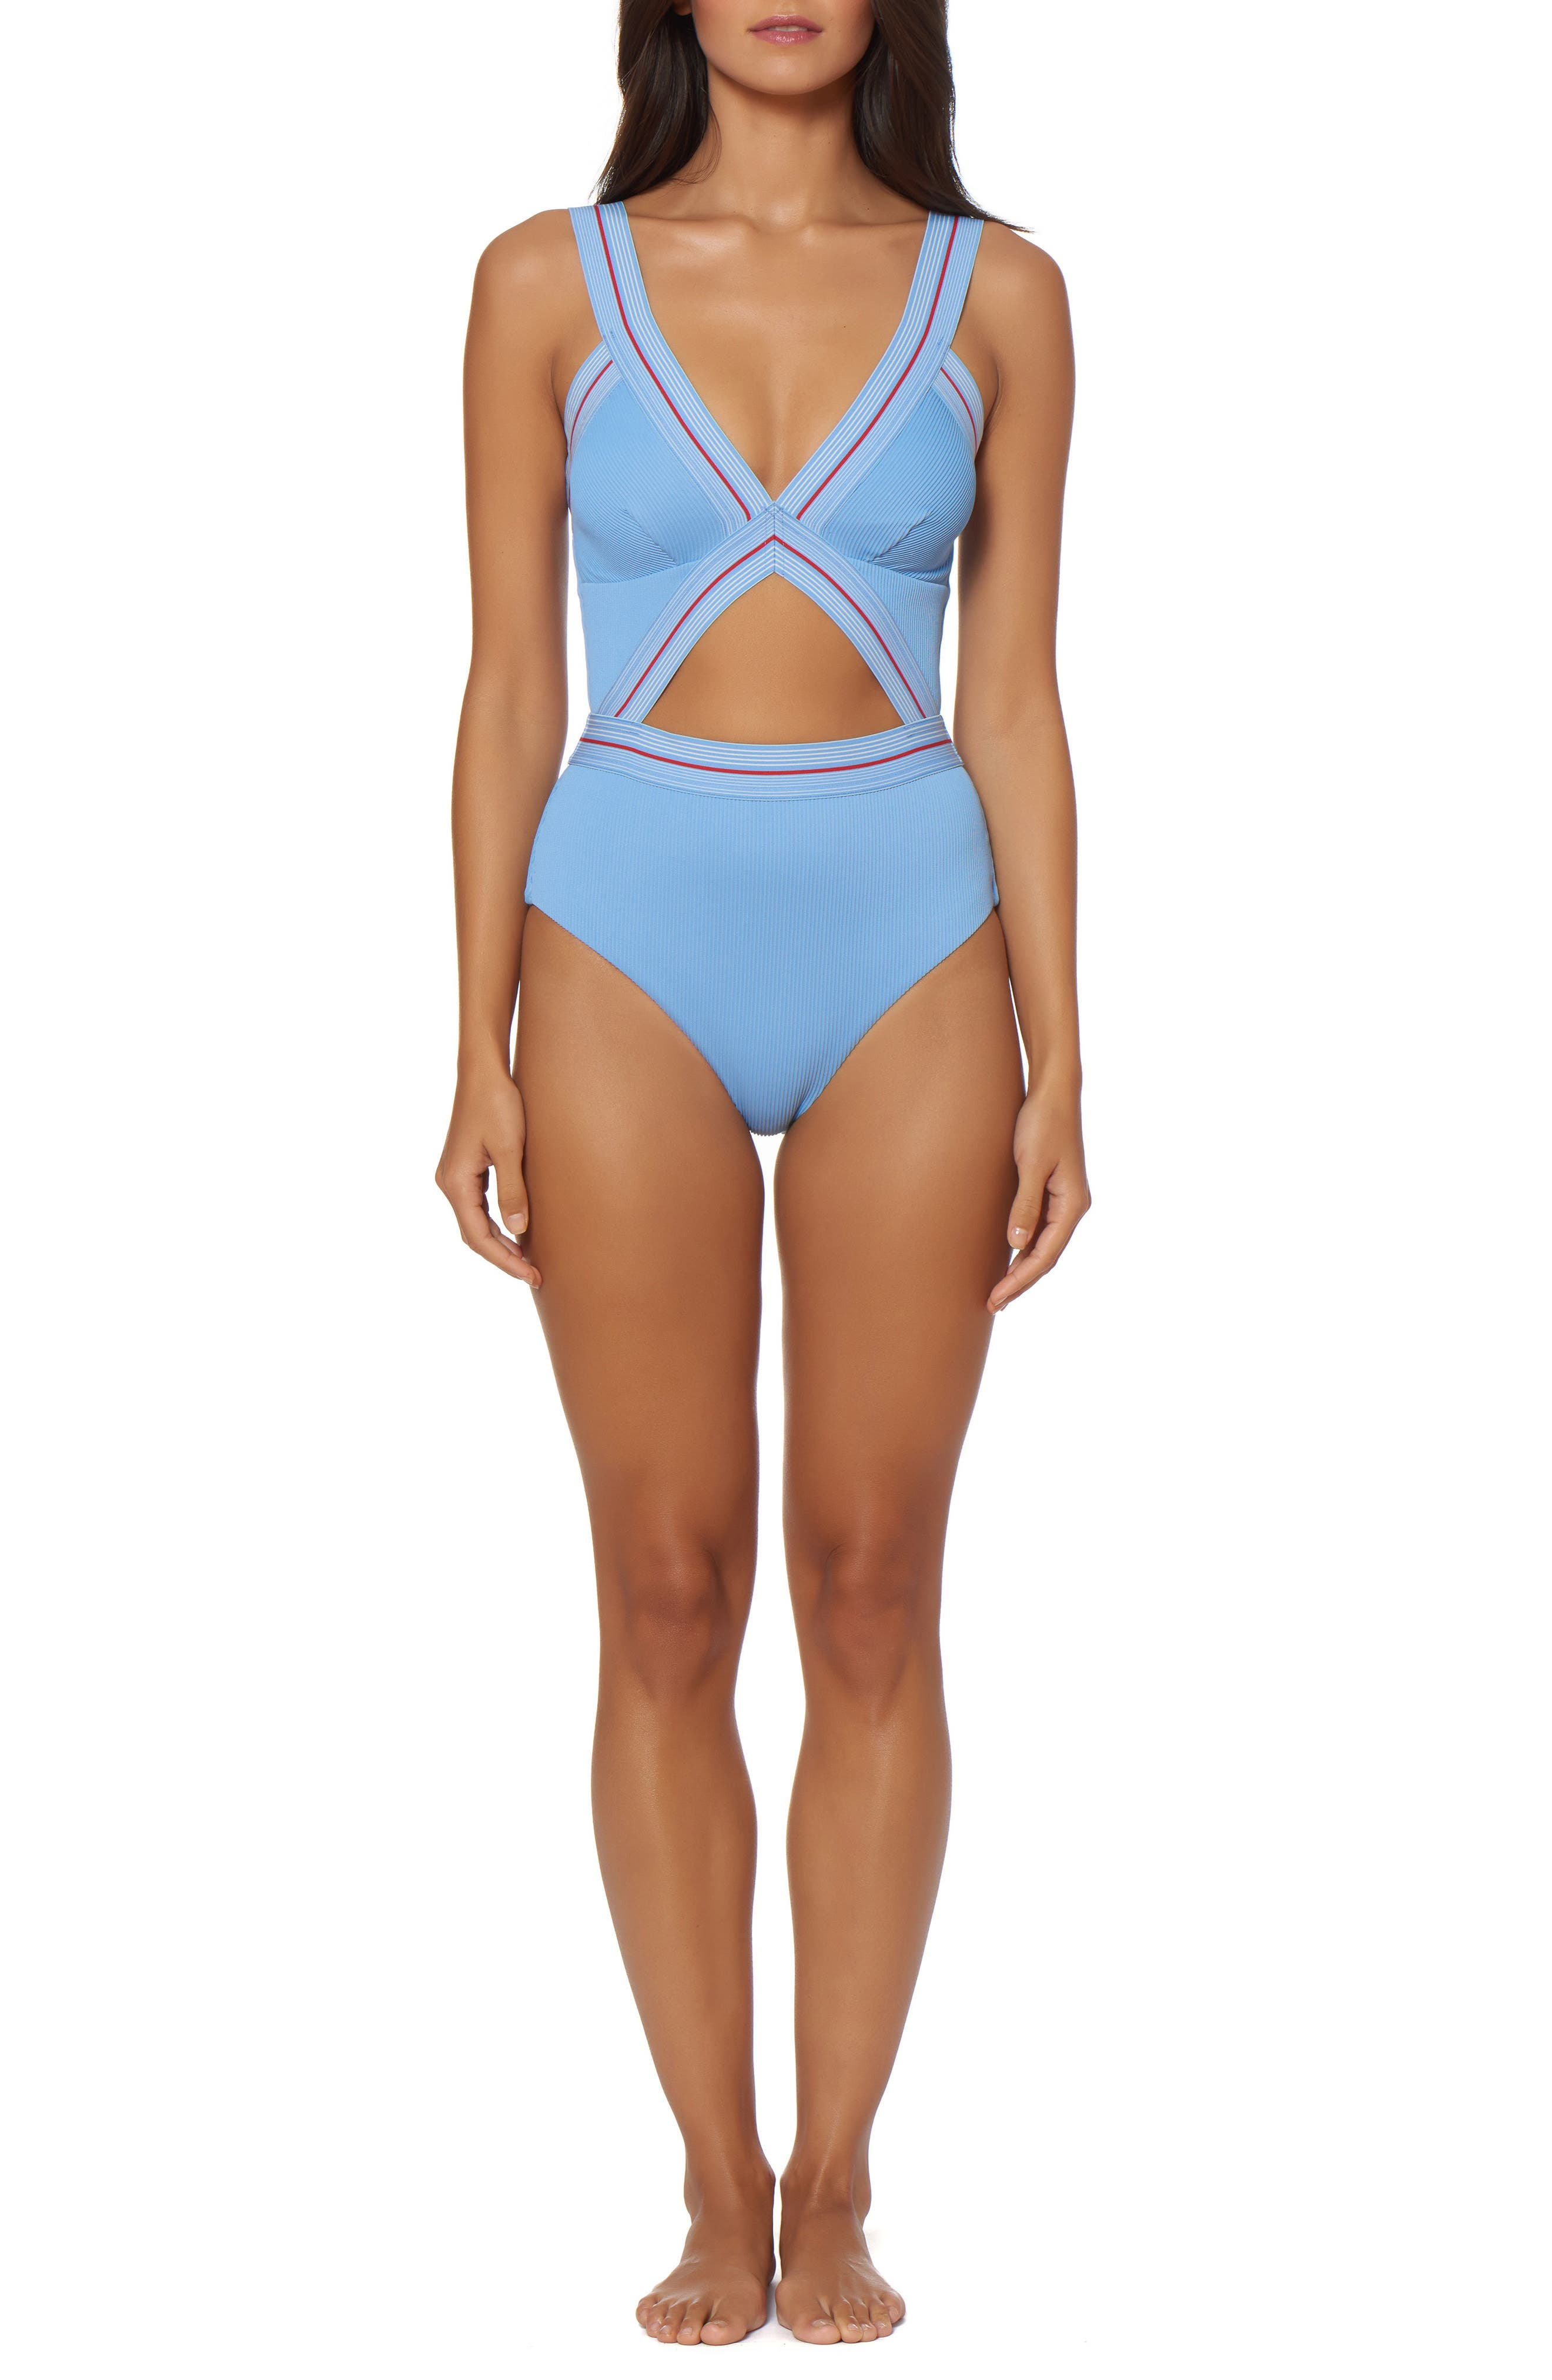 Bondi Beach One-Piece Swimsuit,                             Main thumbnail 1, color,                             Chambray